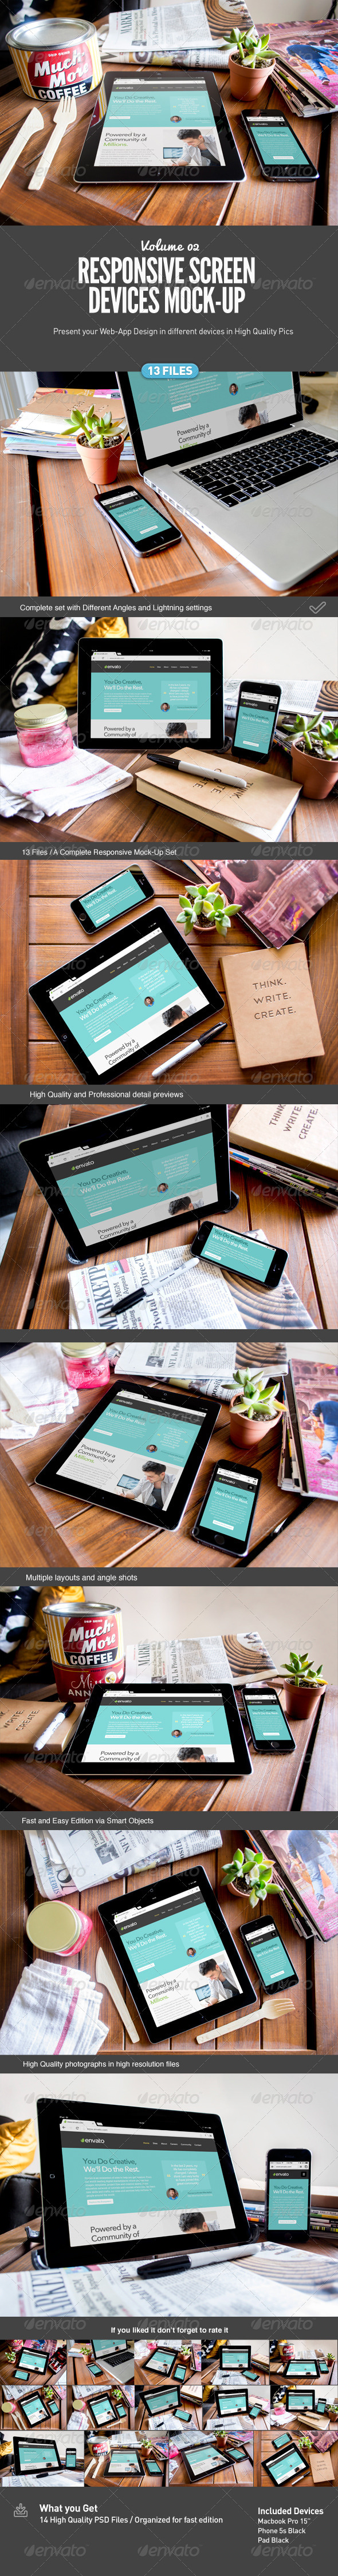 GraphicRiver Responsive Screens Device Mock-Up 7869497